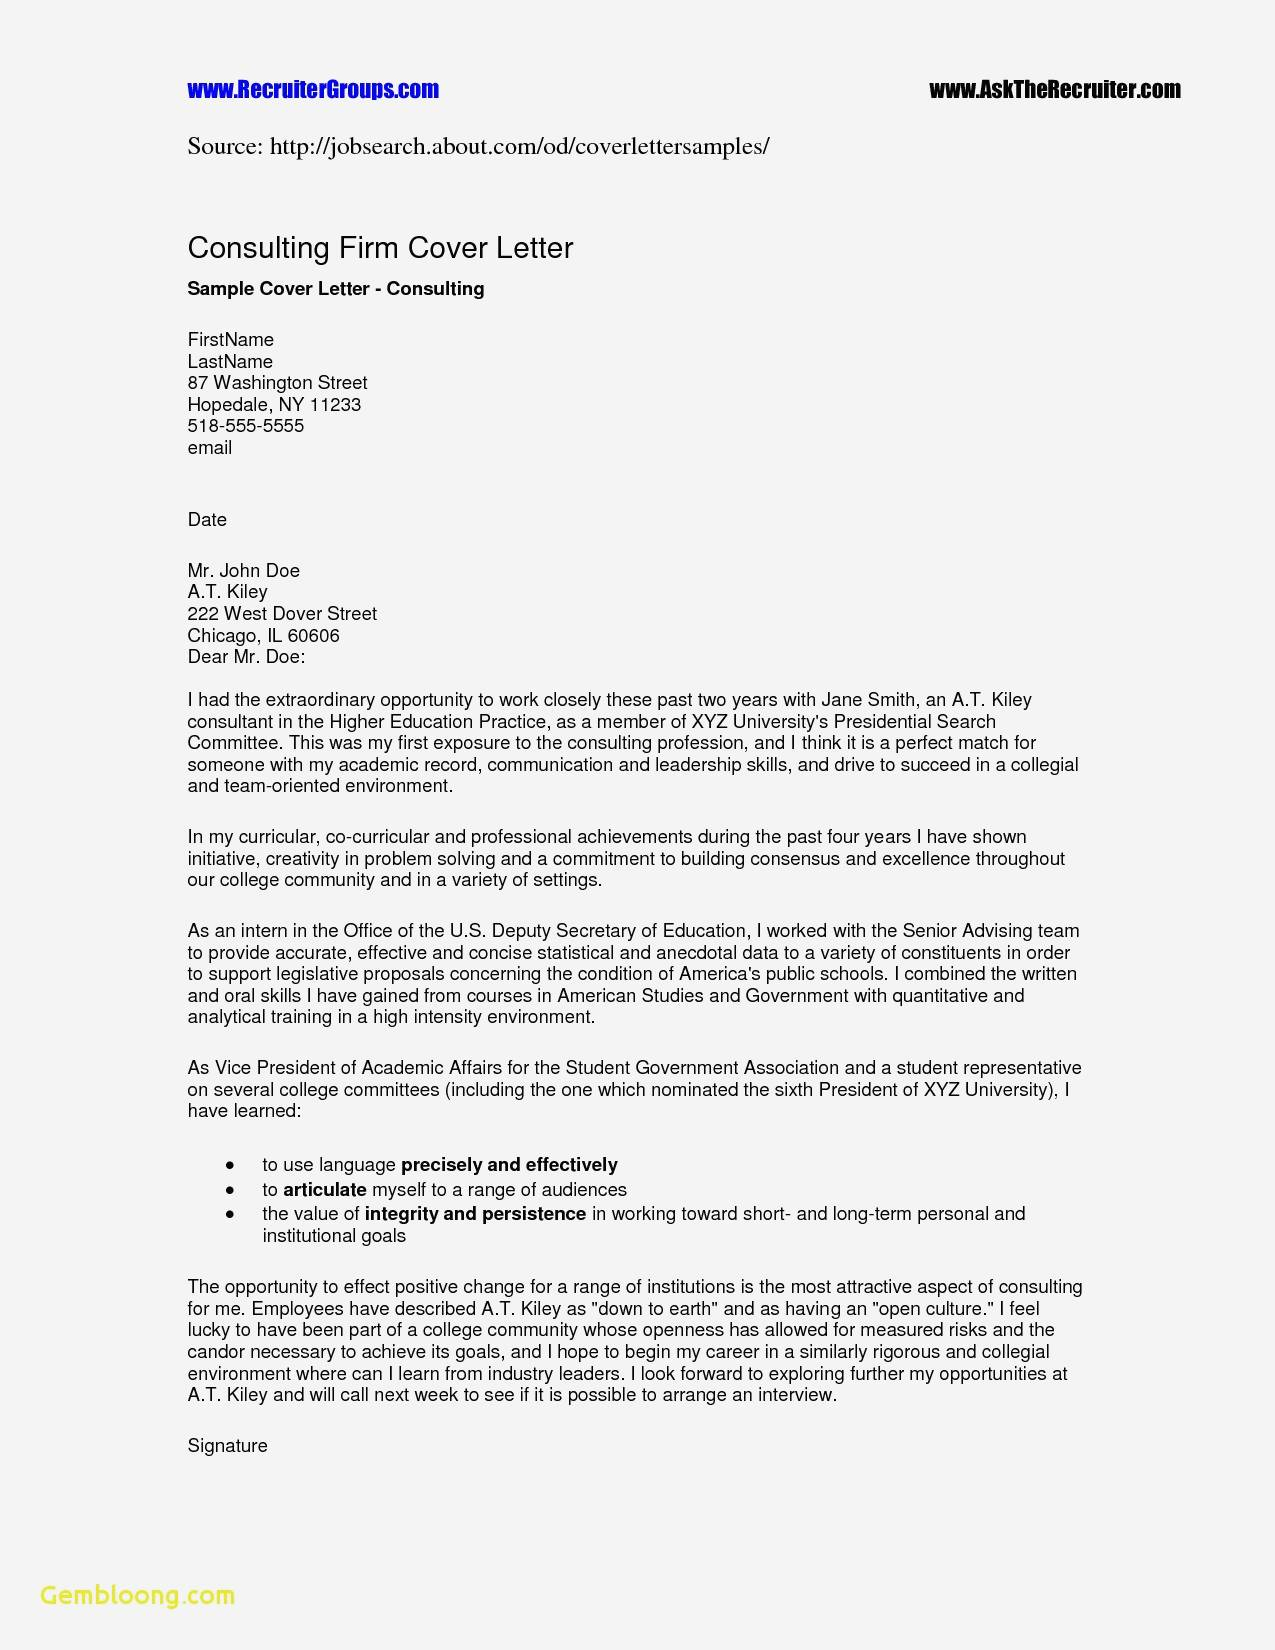 open office resume cover letter template Collection-Bcg Coverr Choice Image Sample within isolution Me Resume Templates Concept Cv Modele Open fice 7-t